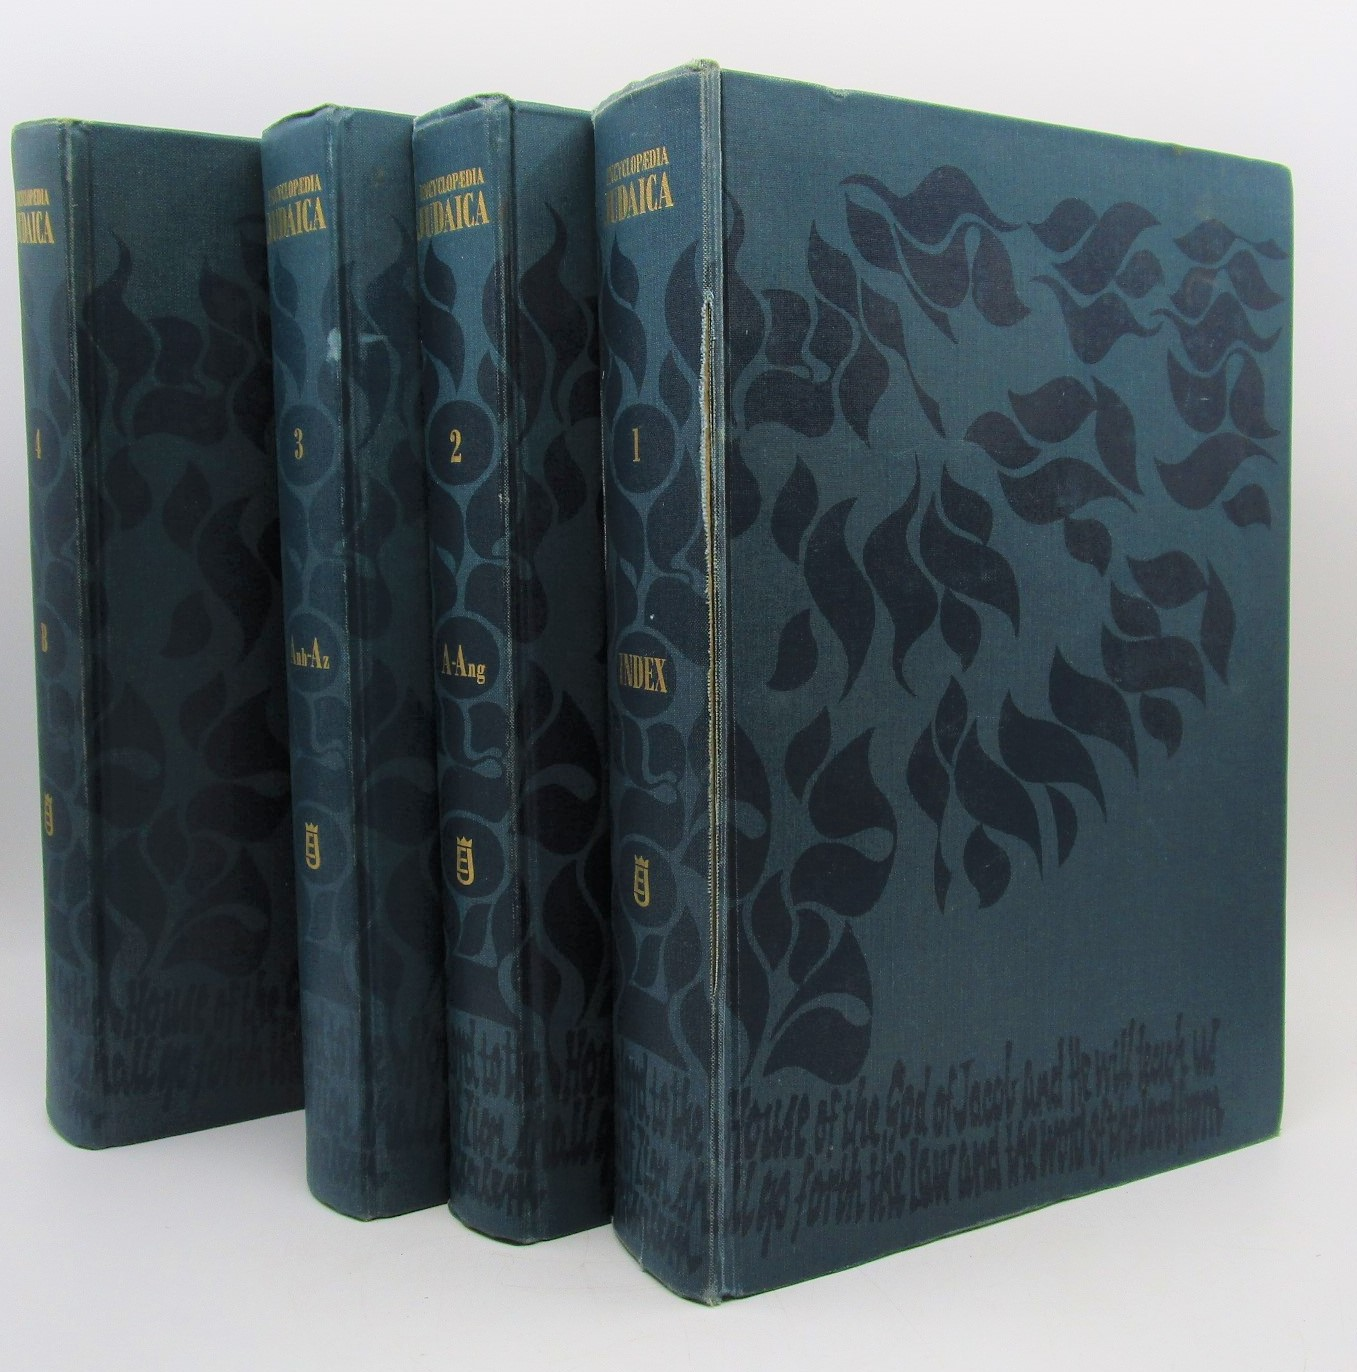 Image for Encyclopaedia Judaica (Complete Sixteen Volume Set Along with 1973 and 1974 books)